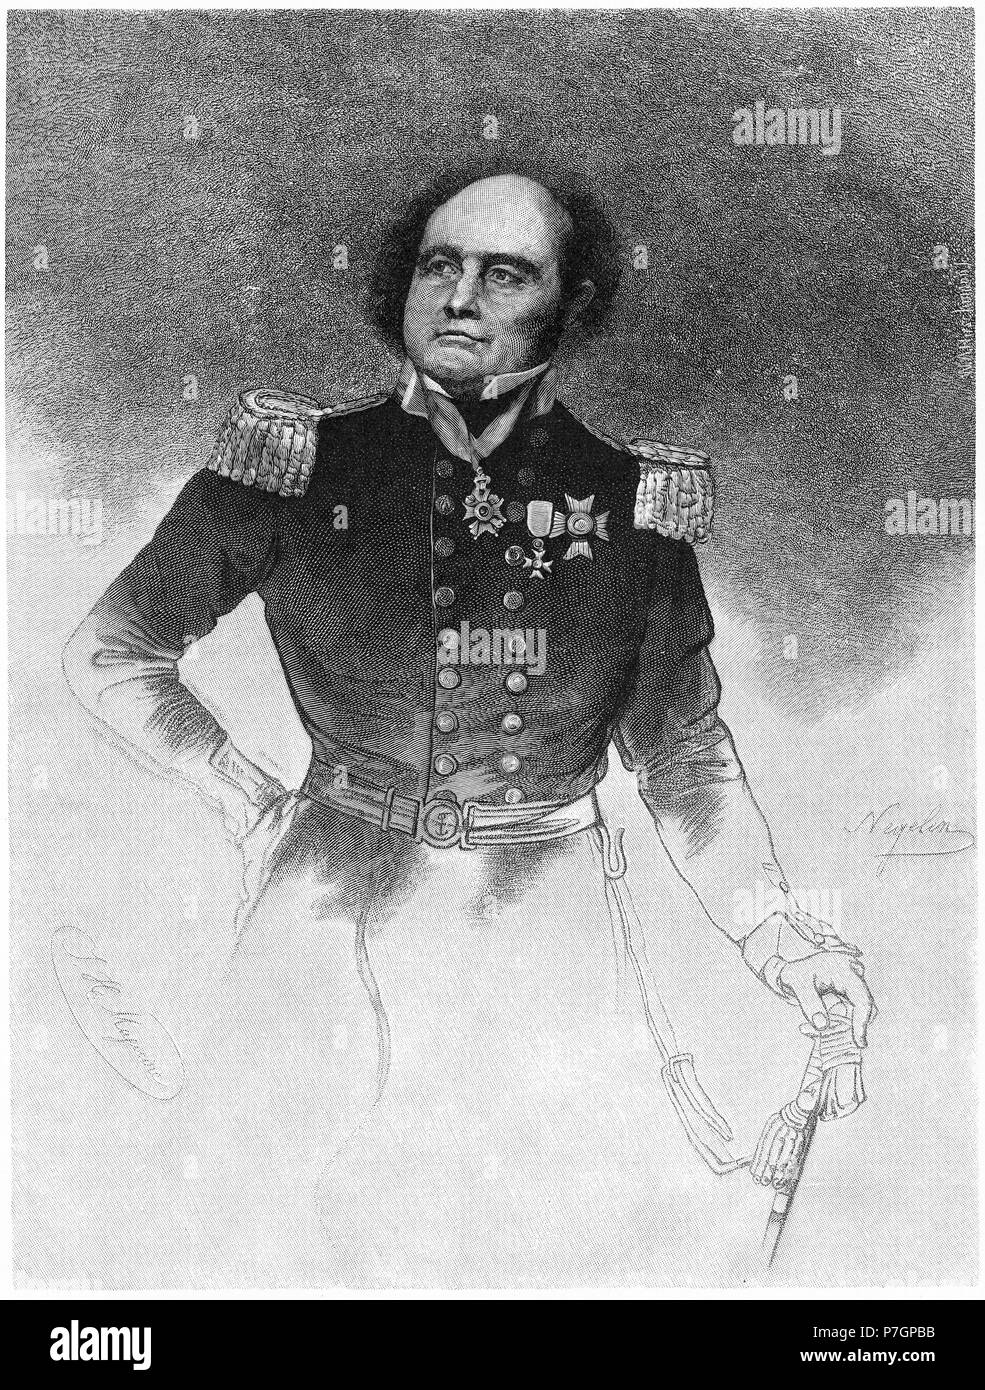 Engraving of Rear-Admiral Sir John Franklin KCH FRGS (1786 – 1847) English Royal Navy officer and explorer of the Arctic. Also Lieutenant-Governor of Van Diemen's Land (now Tasmania). From the Picturesque Atlas of Australasia Vol 2, 1886 - Stock Image